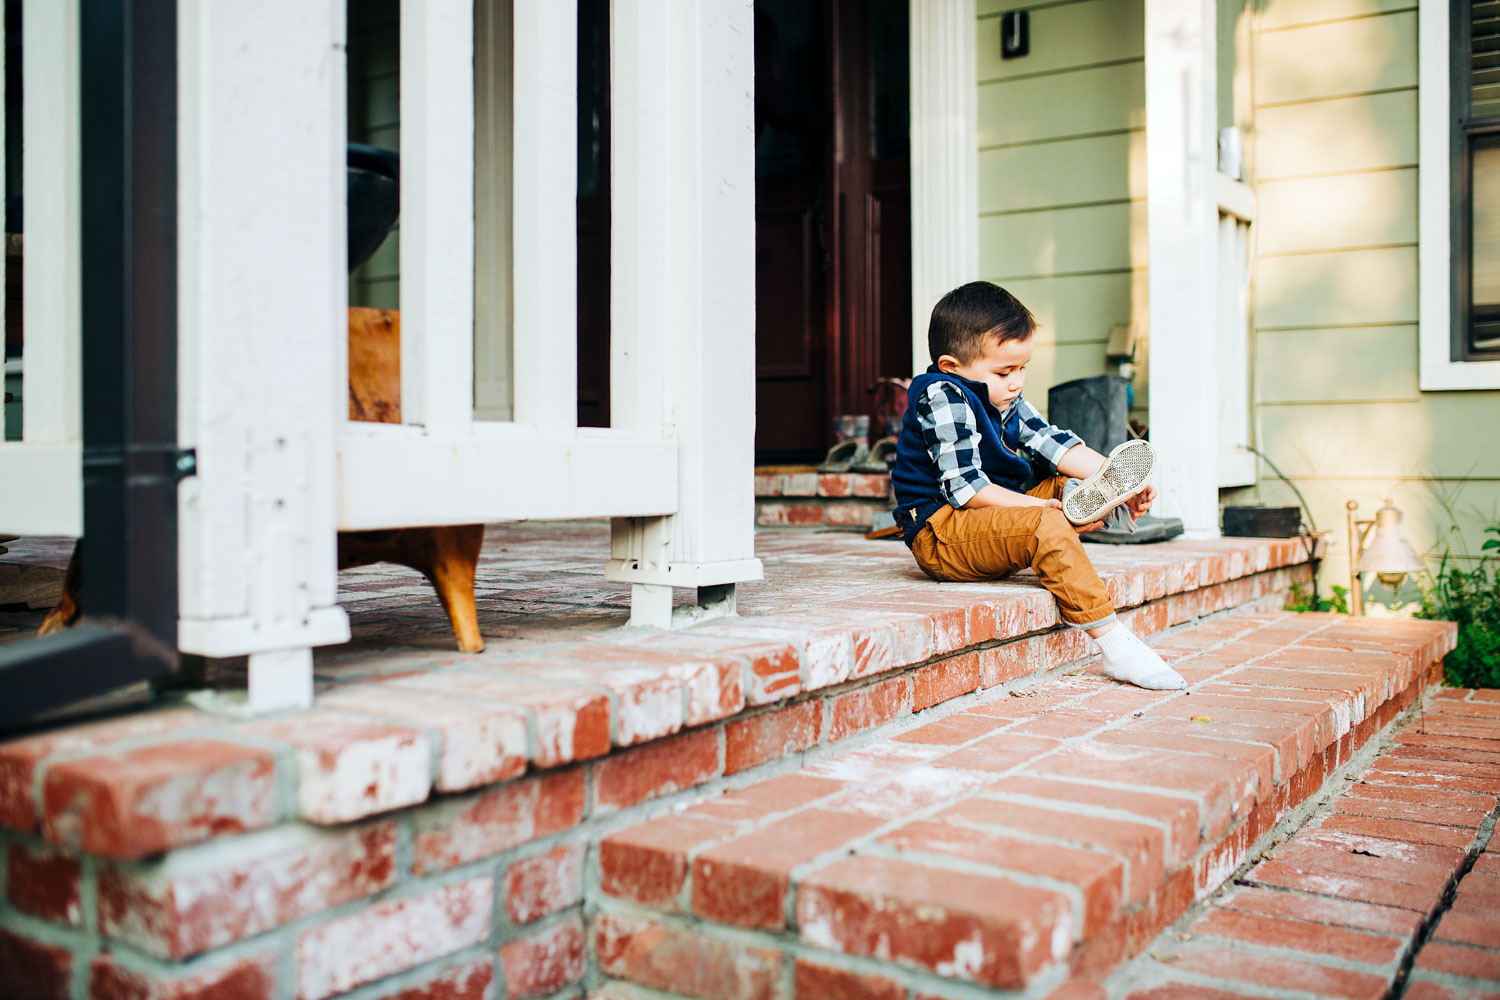 A boy puts on his shoes on the front porch steps during a lifestyle home photo session with Amy Wright Photography in Roseville, California.